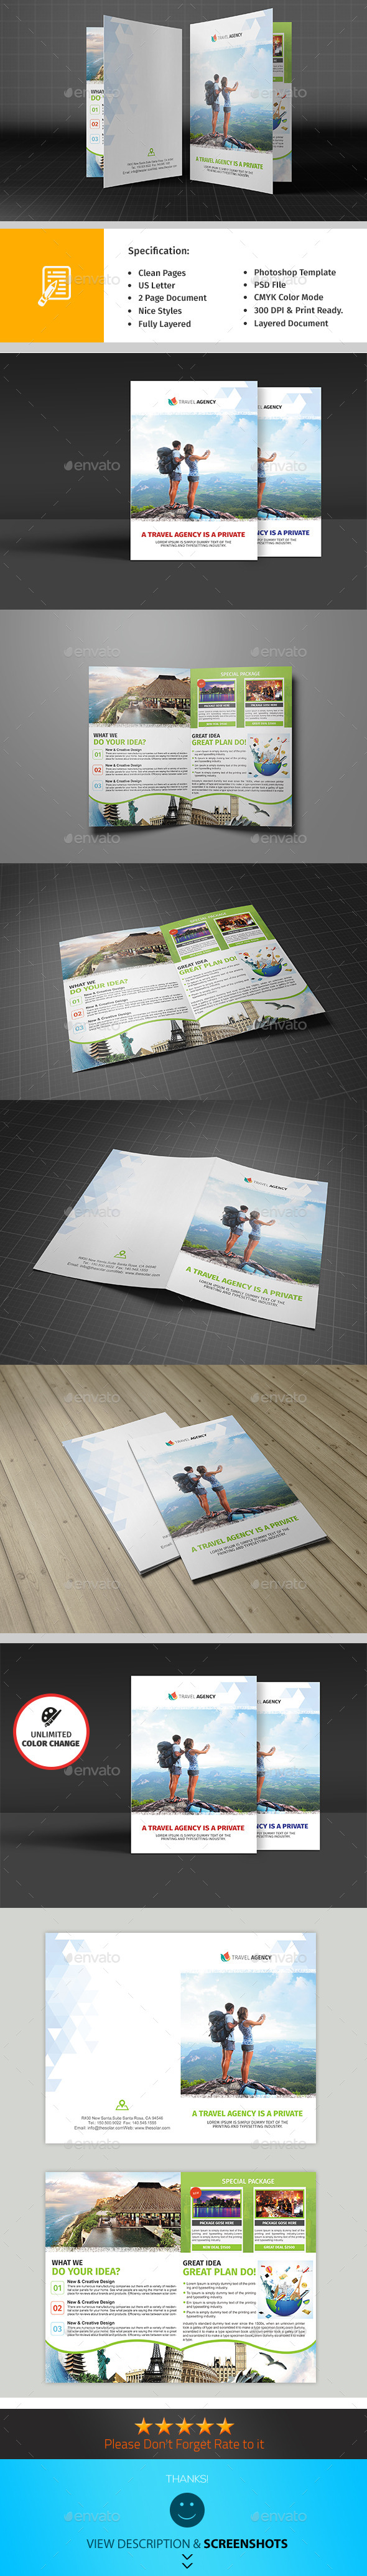 GraphicRiver Holiday Travel Agency Bifold Brochure 9709545